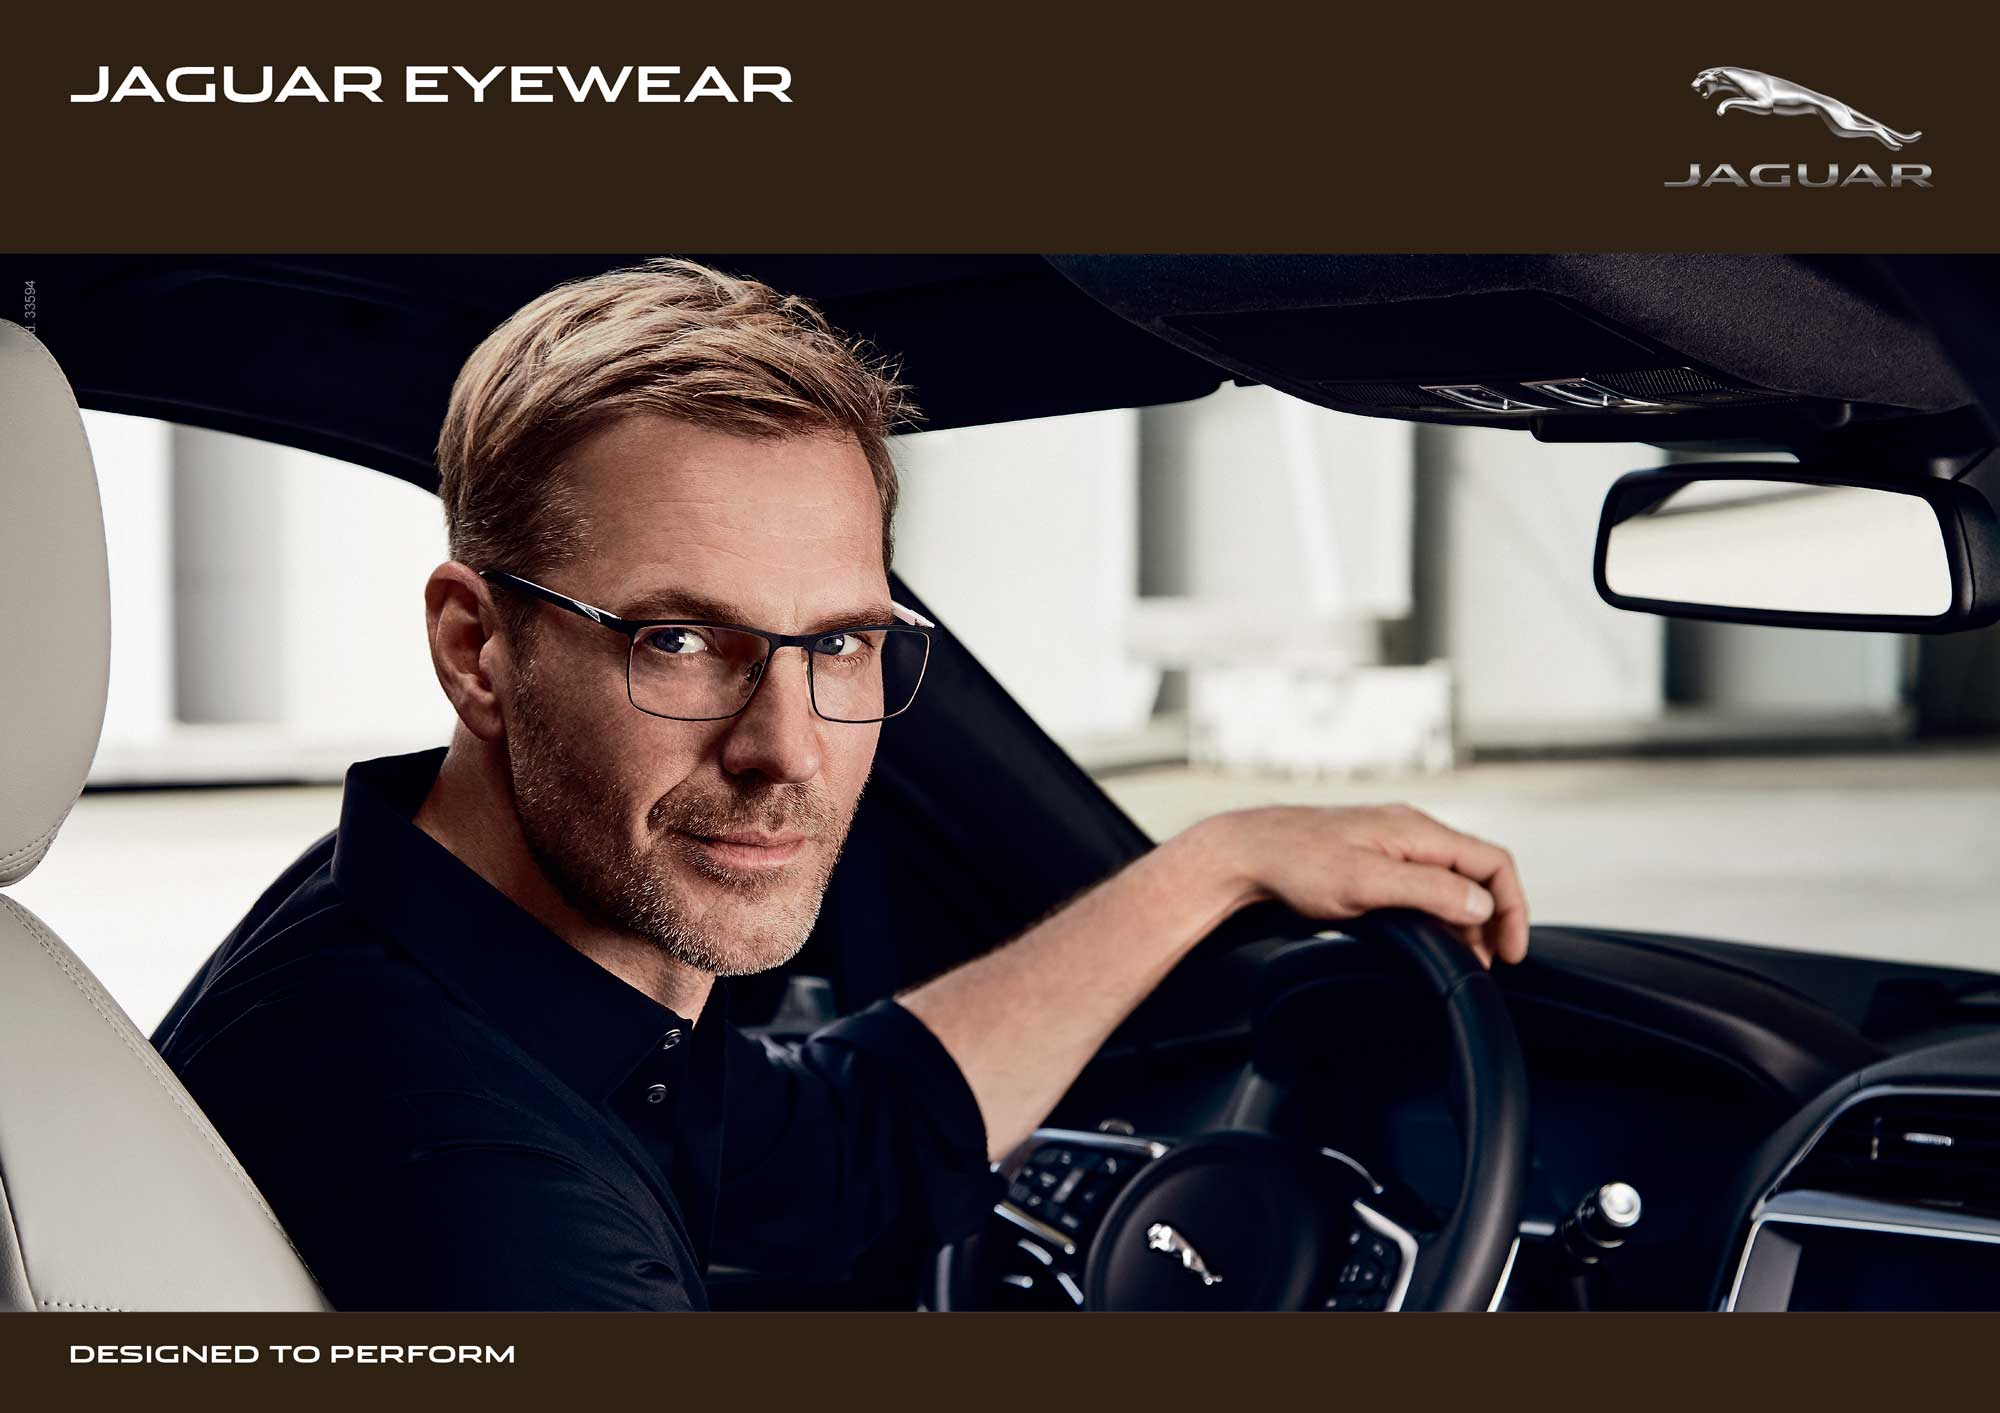 Advertentie Jaguar brillen